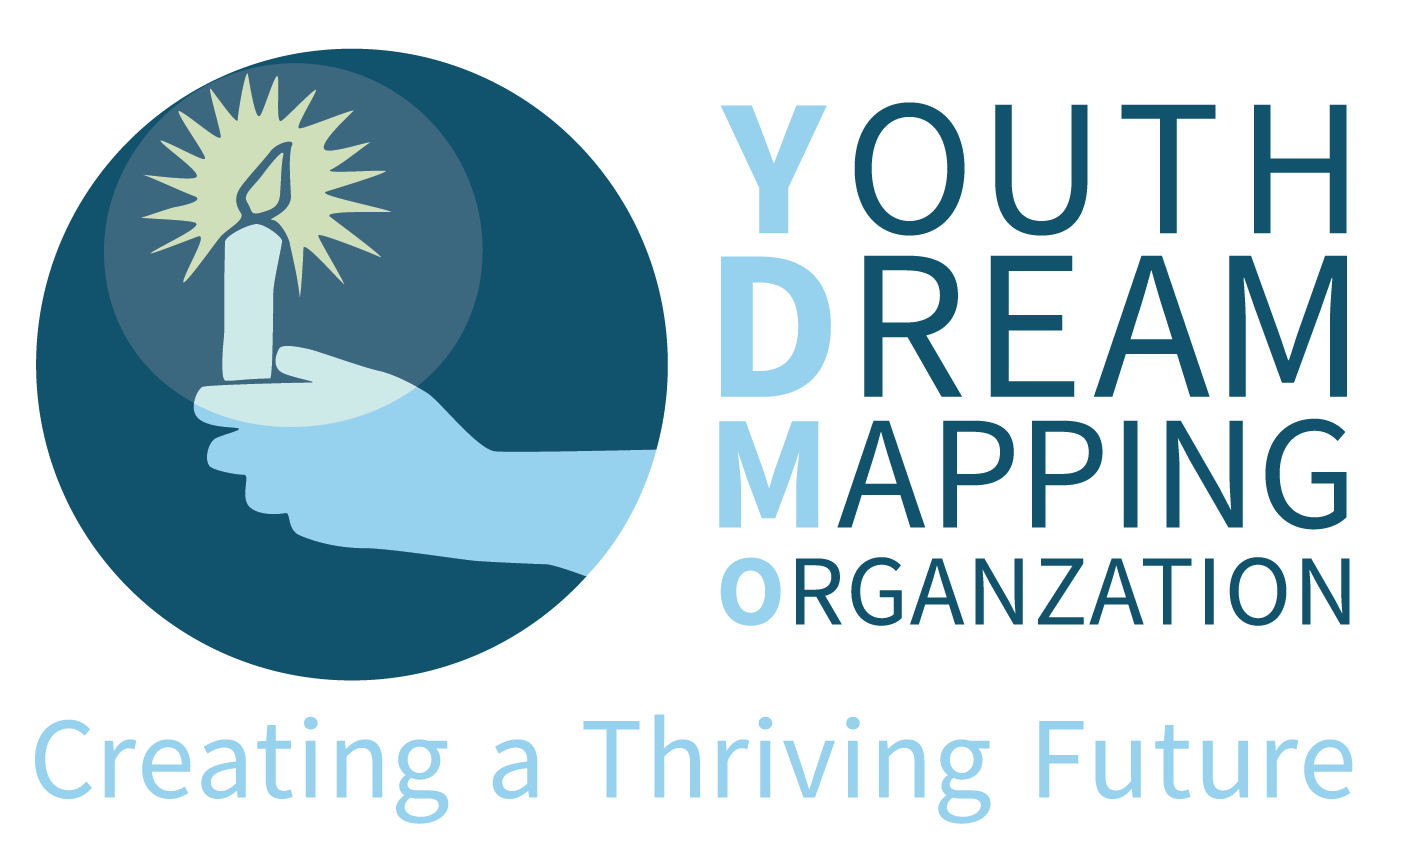 Youth Dream Mapping